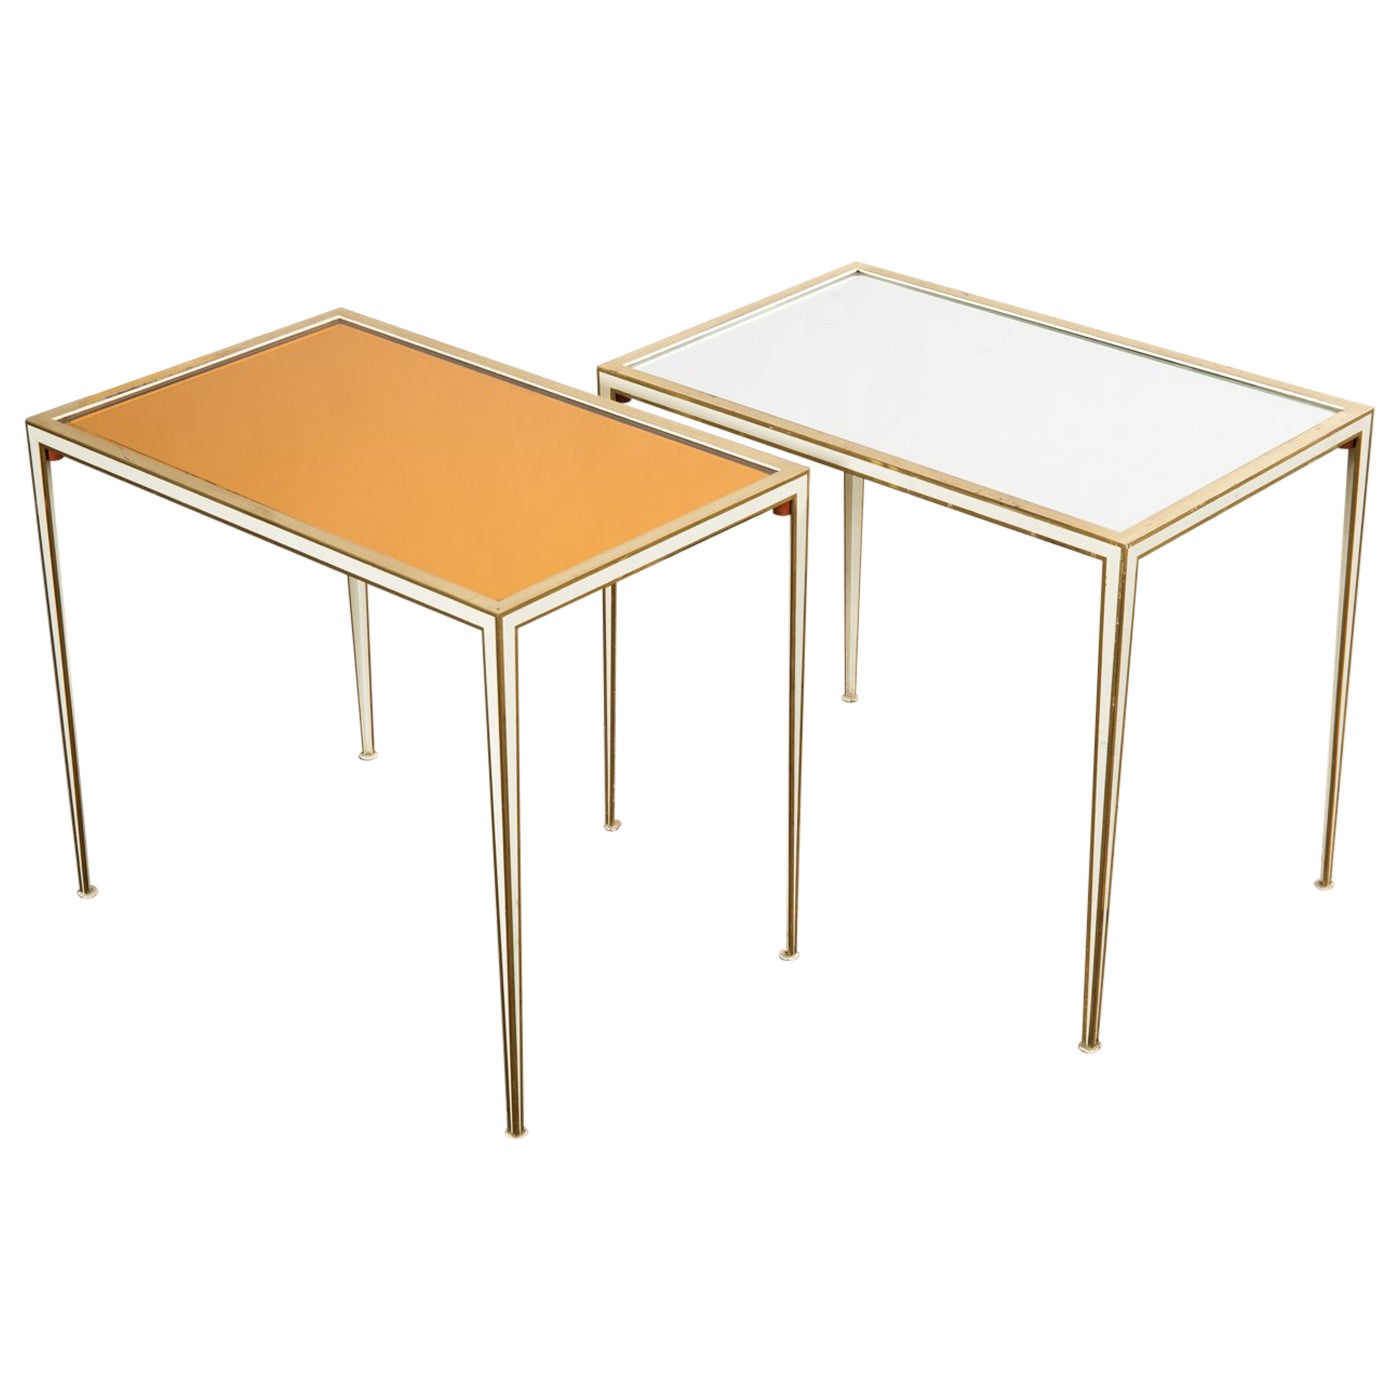 Pair of Mid-Century side tables with Mirror Glass tops by Vereinigte Werkstätten